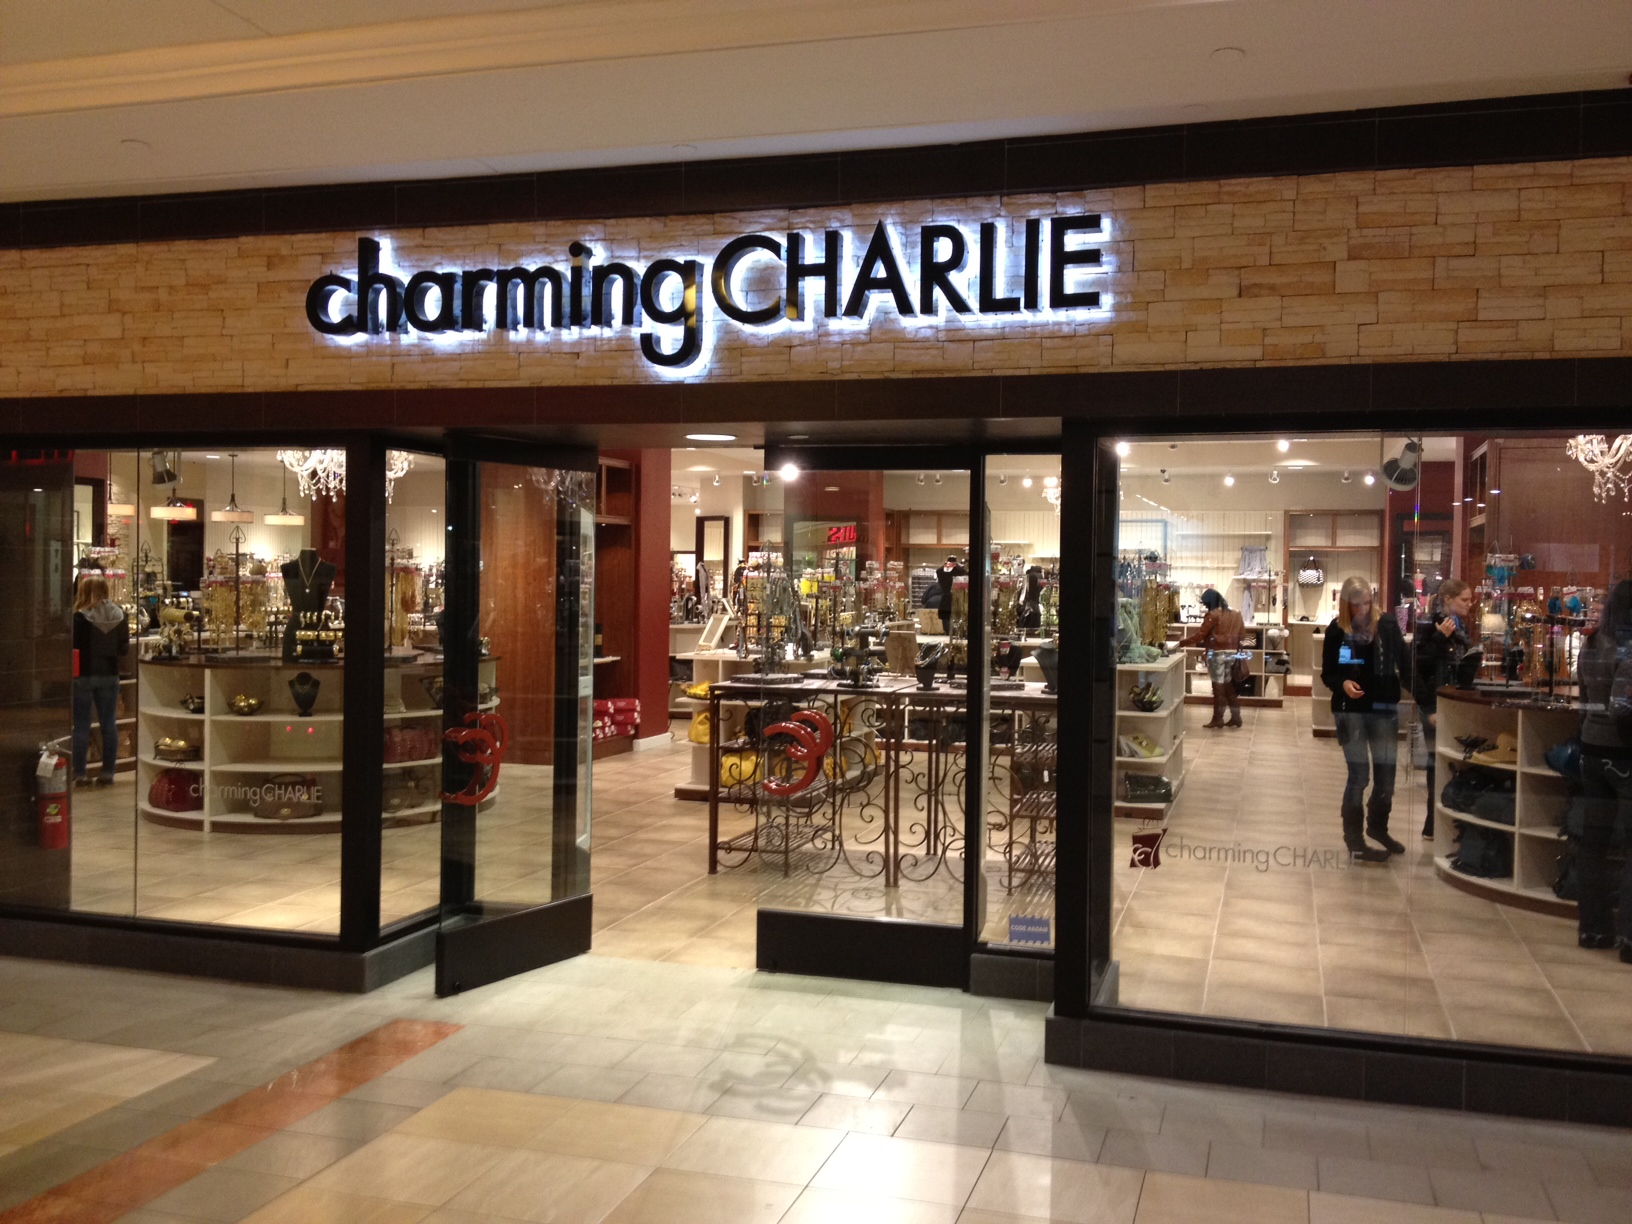 image about Charming Charlie Coupons Printable identify Lovely charlie store on the internet - Excellent economical clever television